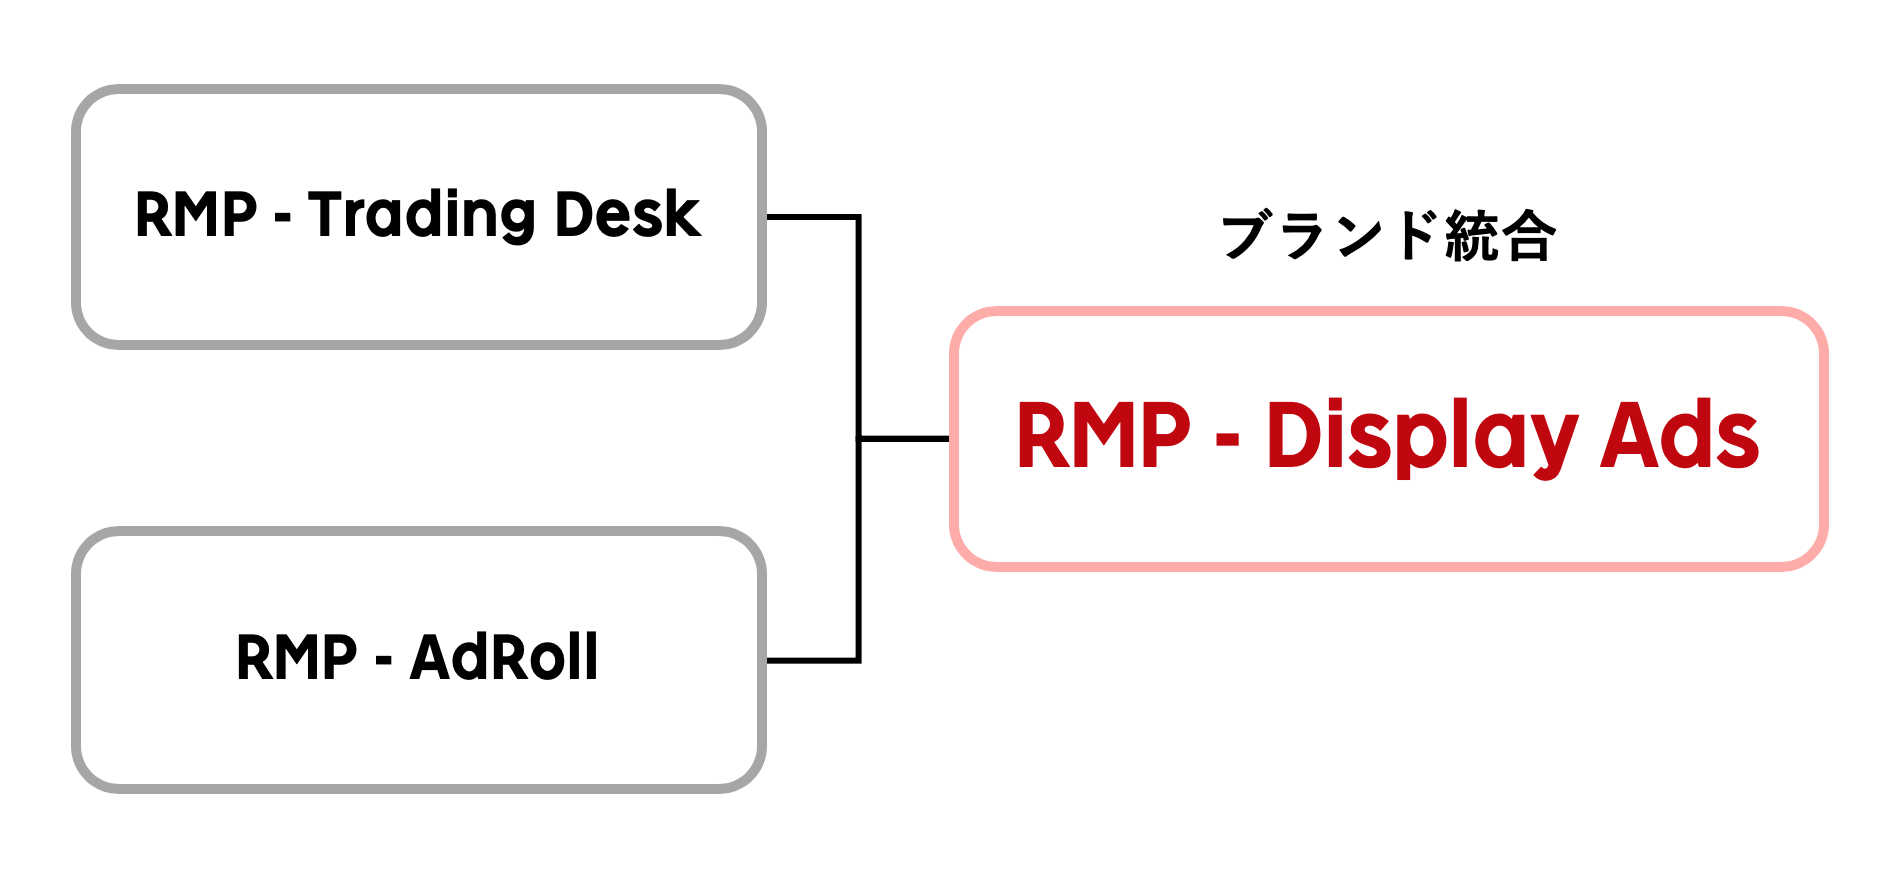 「RMP - Trading Desk」と「RMP - AdRoll」をブランド統合し、「RMP - Display Ads」へ